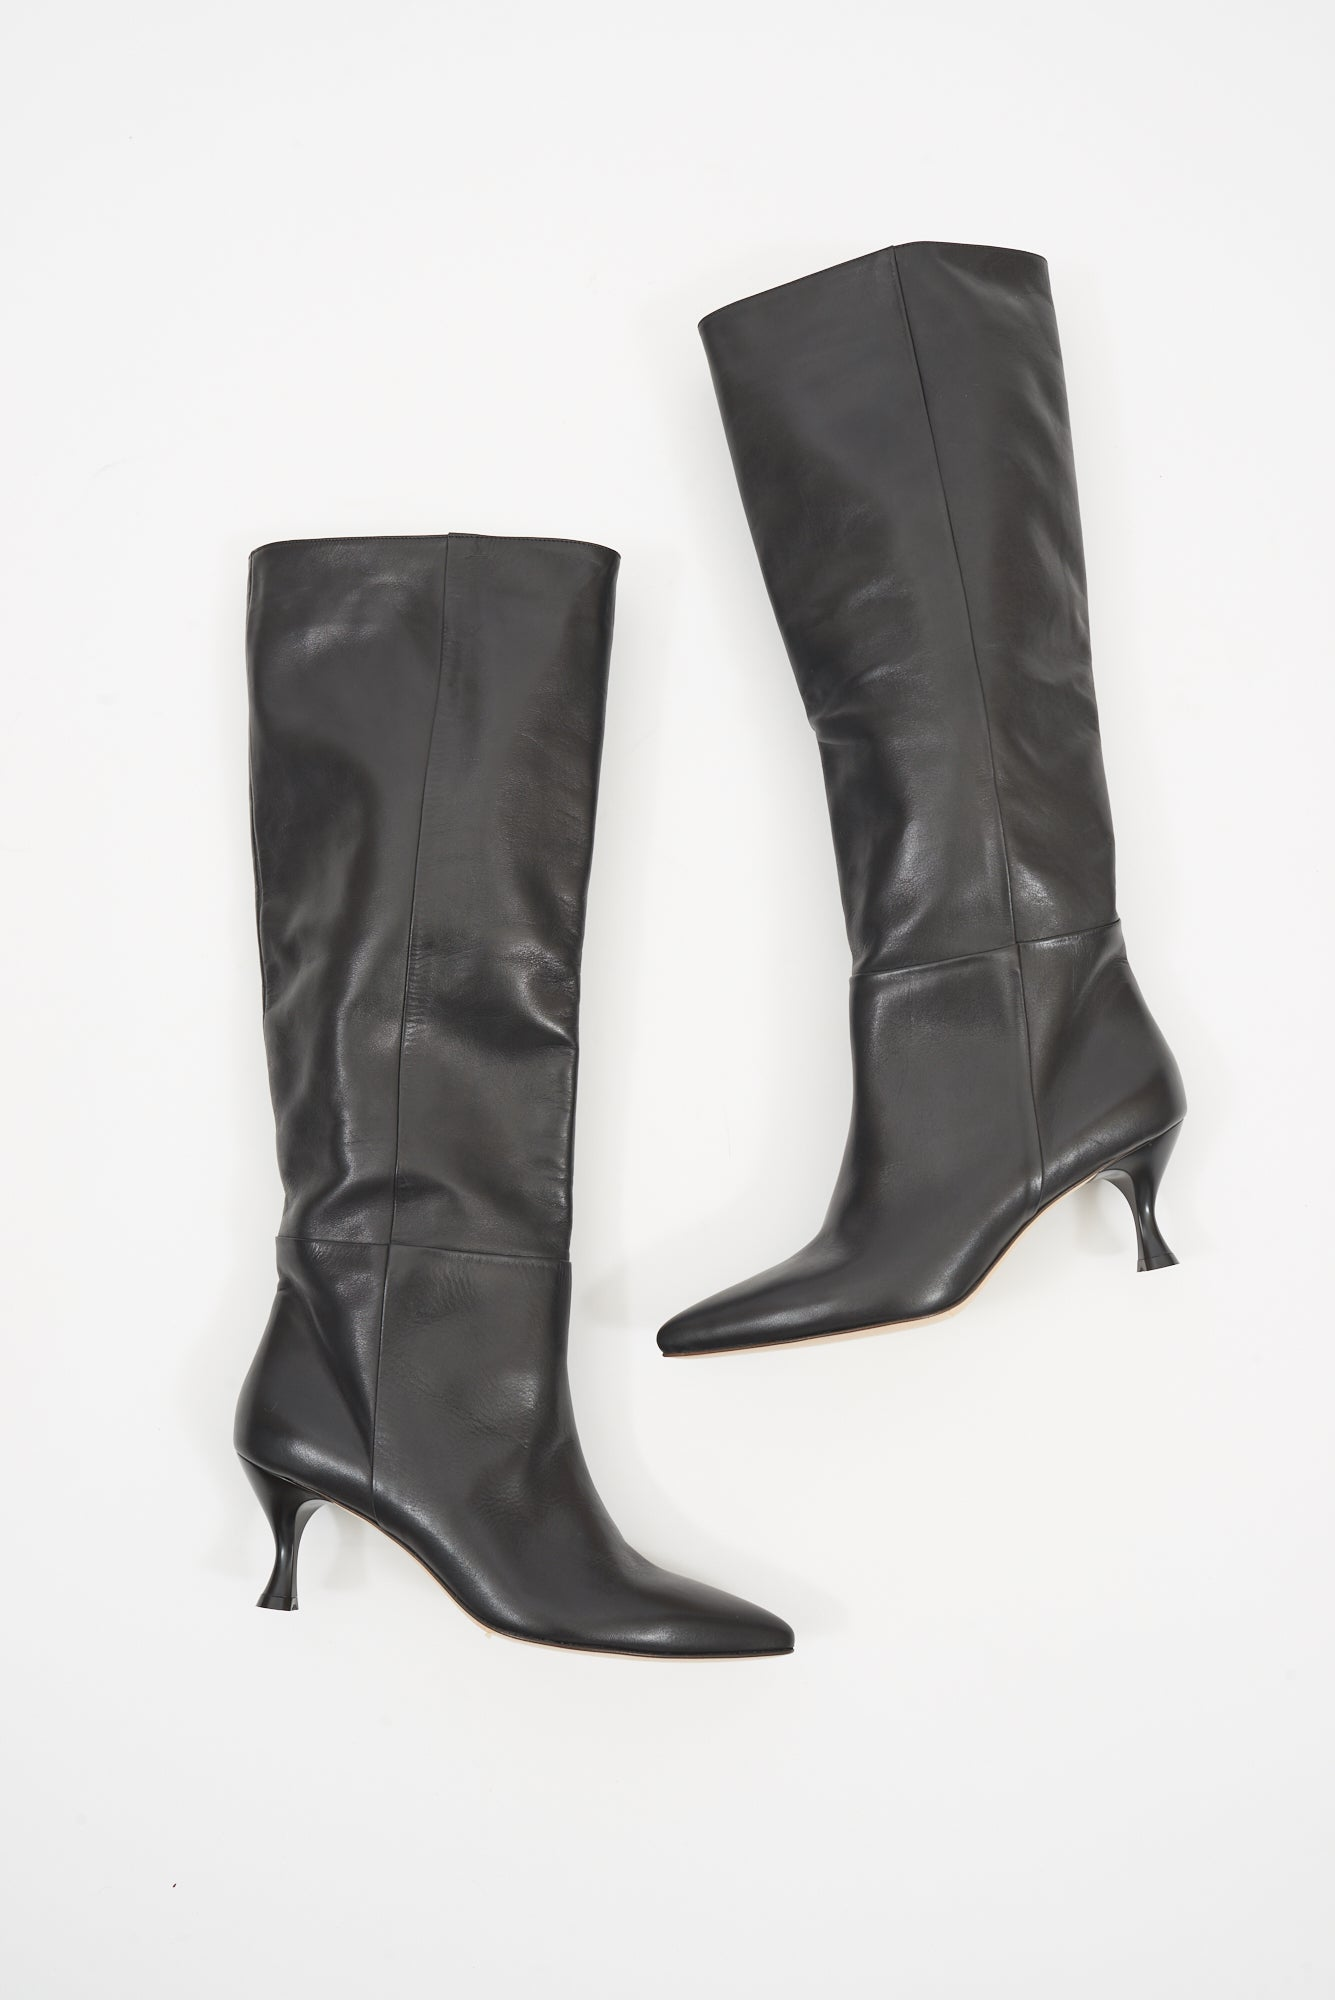 Ongekend Barbie Boot – Muse Boutique SV-78